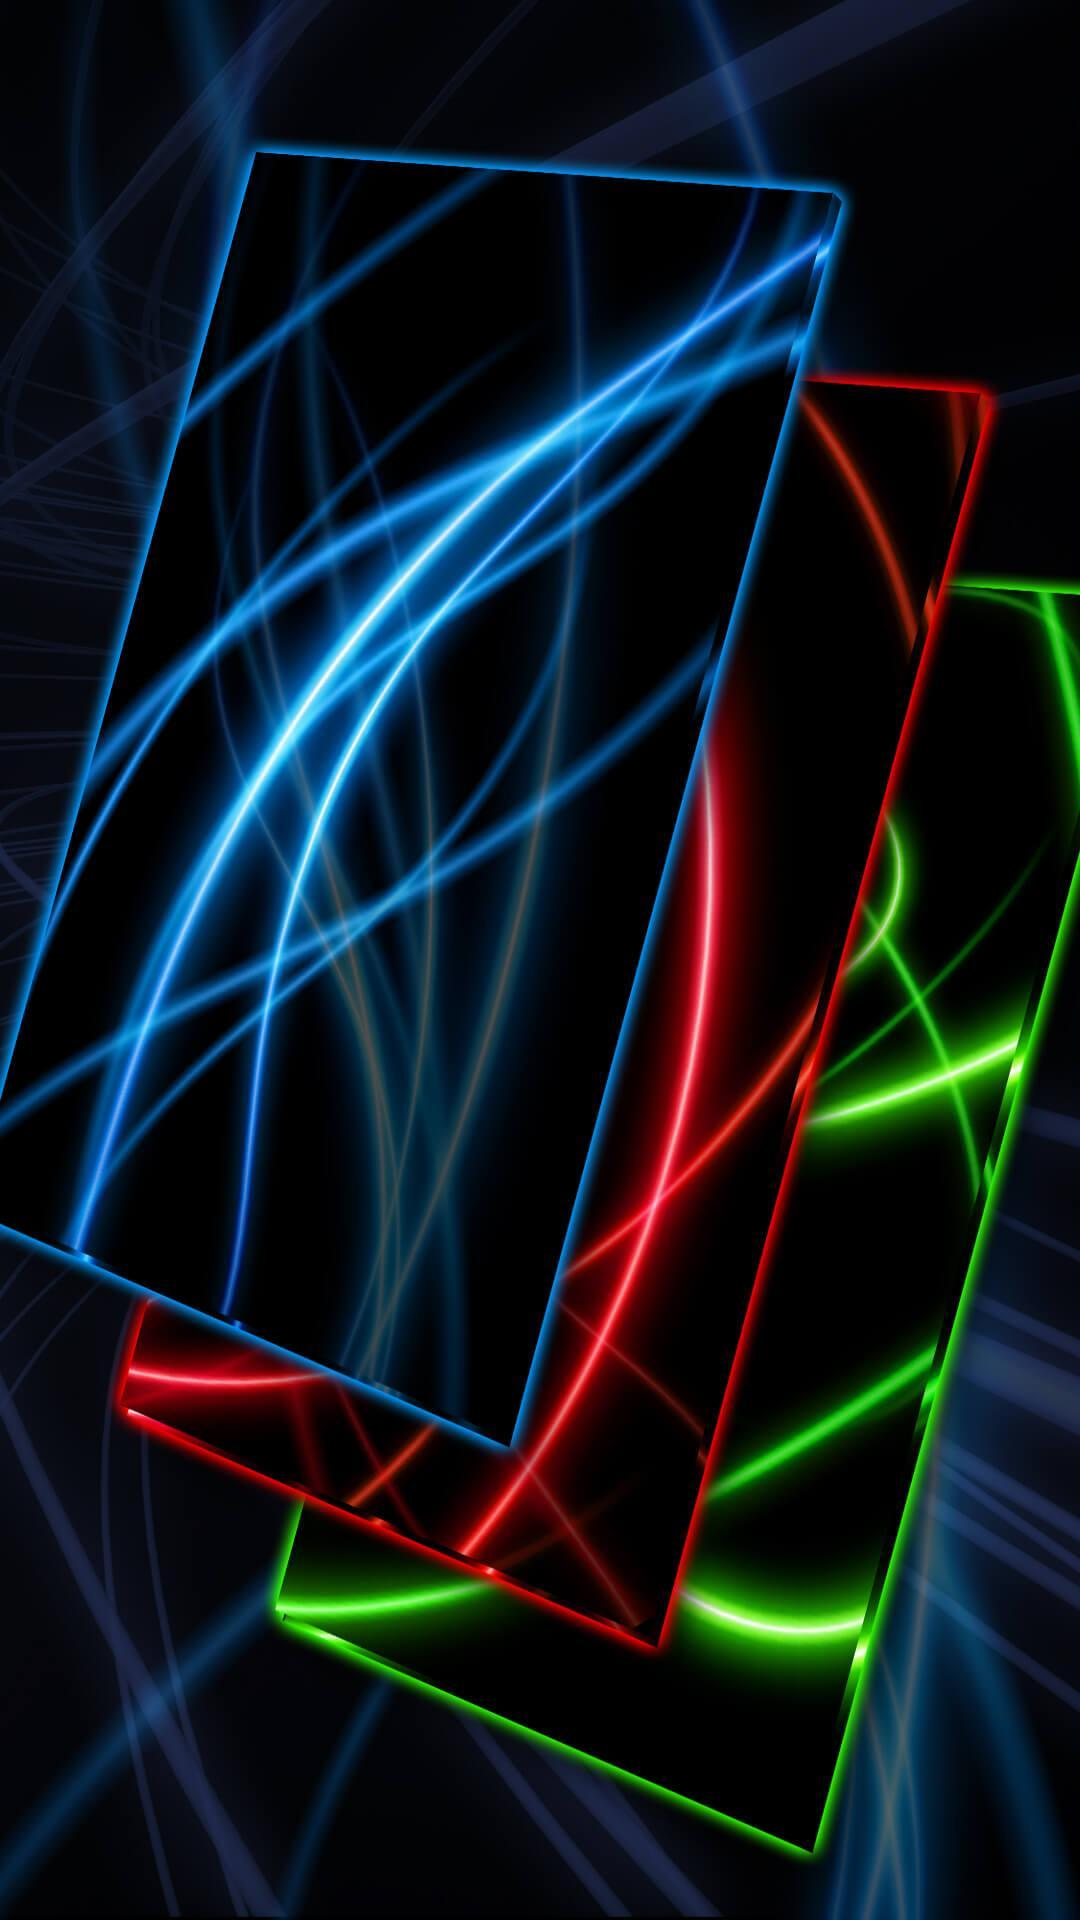 2019 Neon Live Wallpaper For Android Apk Download